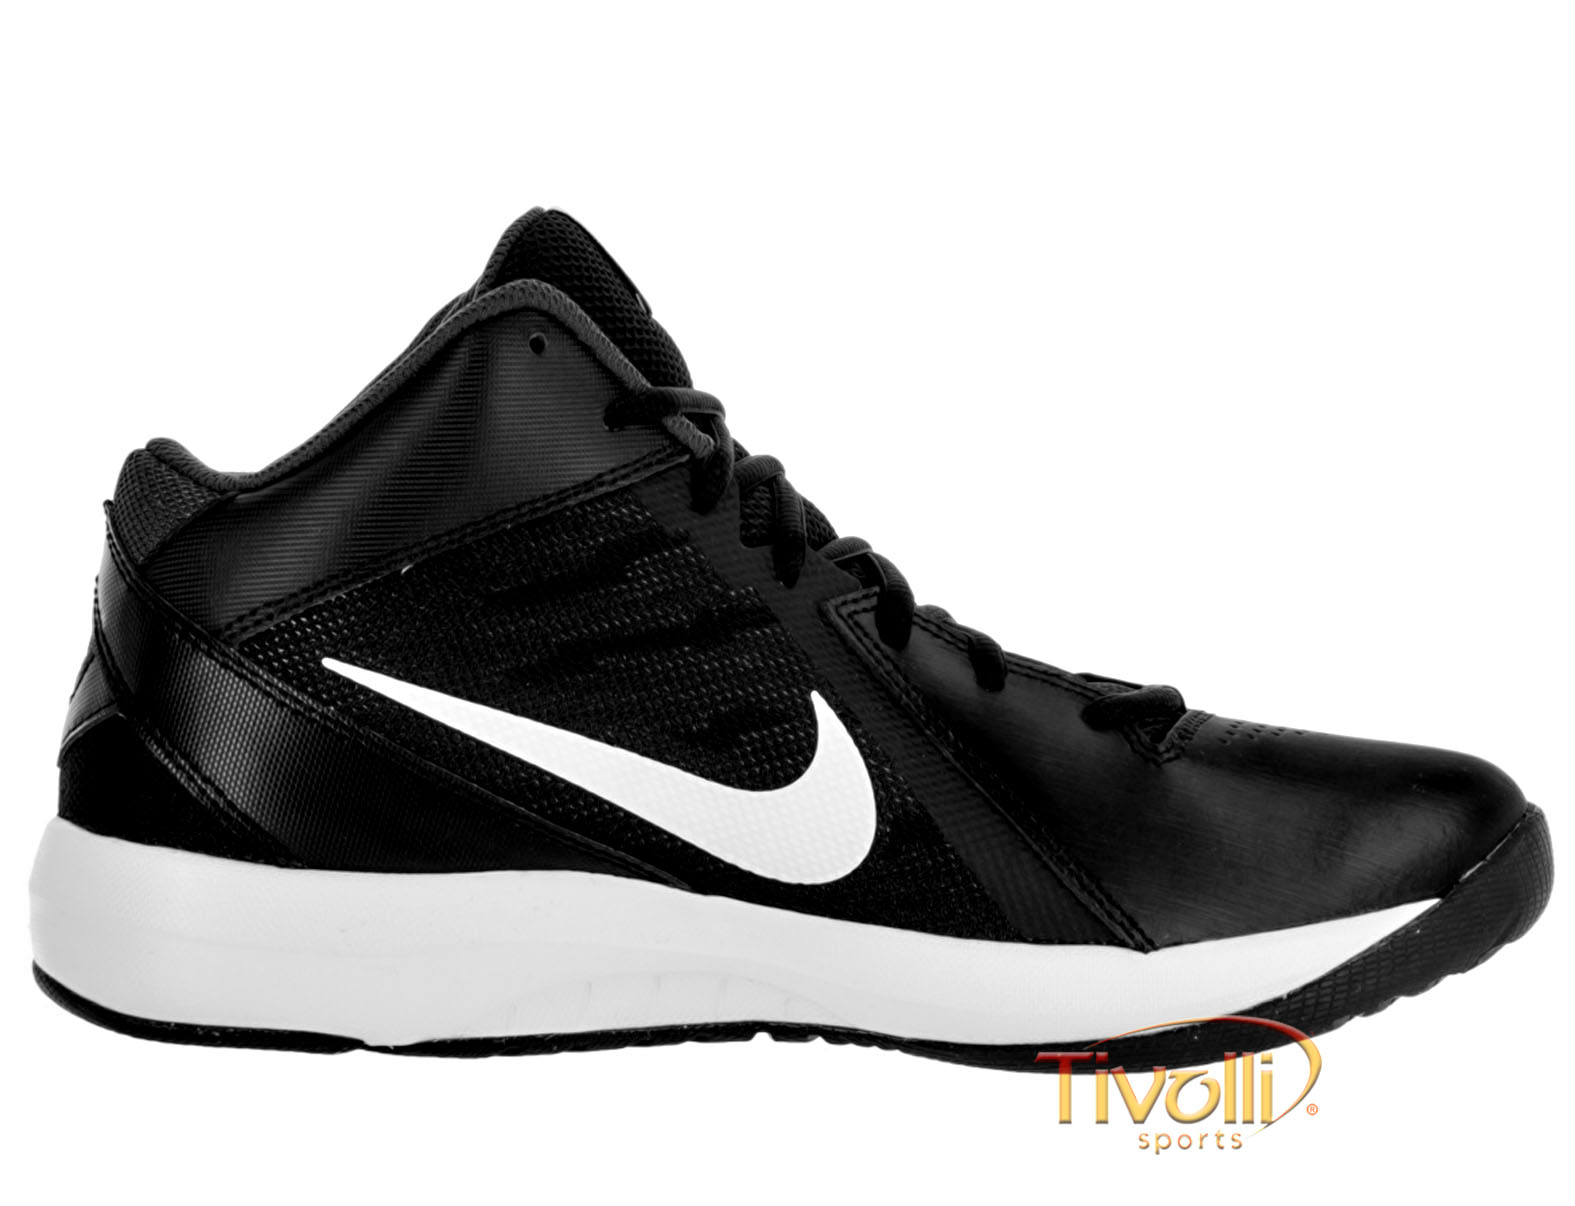 11ae1e4eb Tênis Nike The Air Overplay IX Basquete. Masculino Preto e Branco